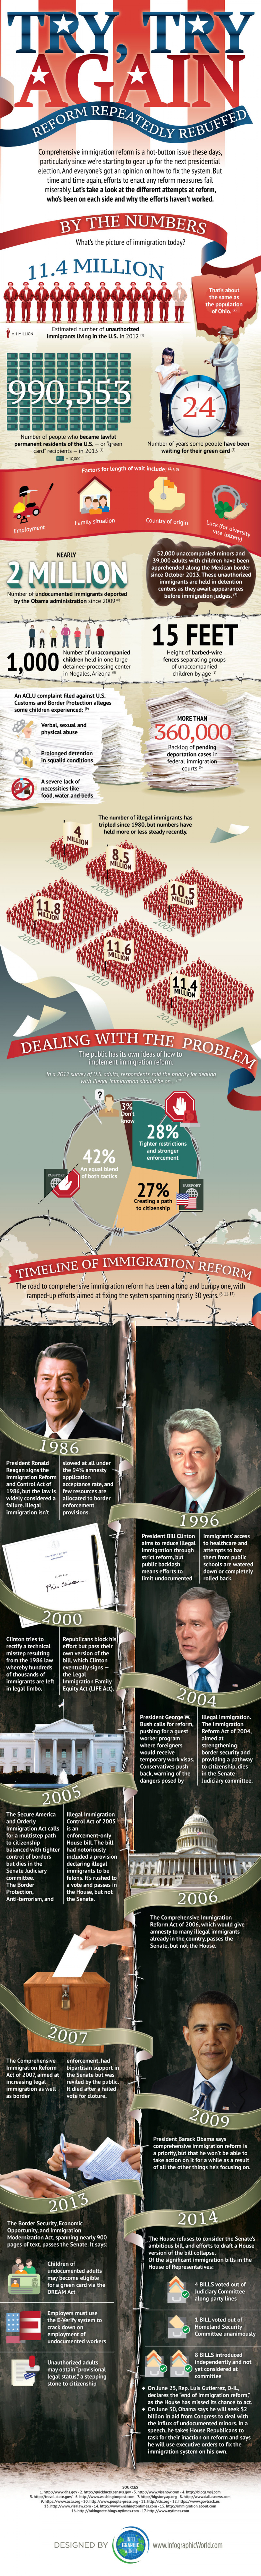 Try, Try Again: Reform Repeatedly Rebuffed Infographic